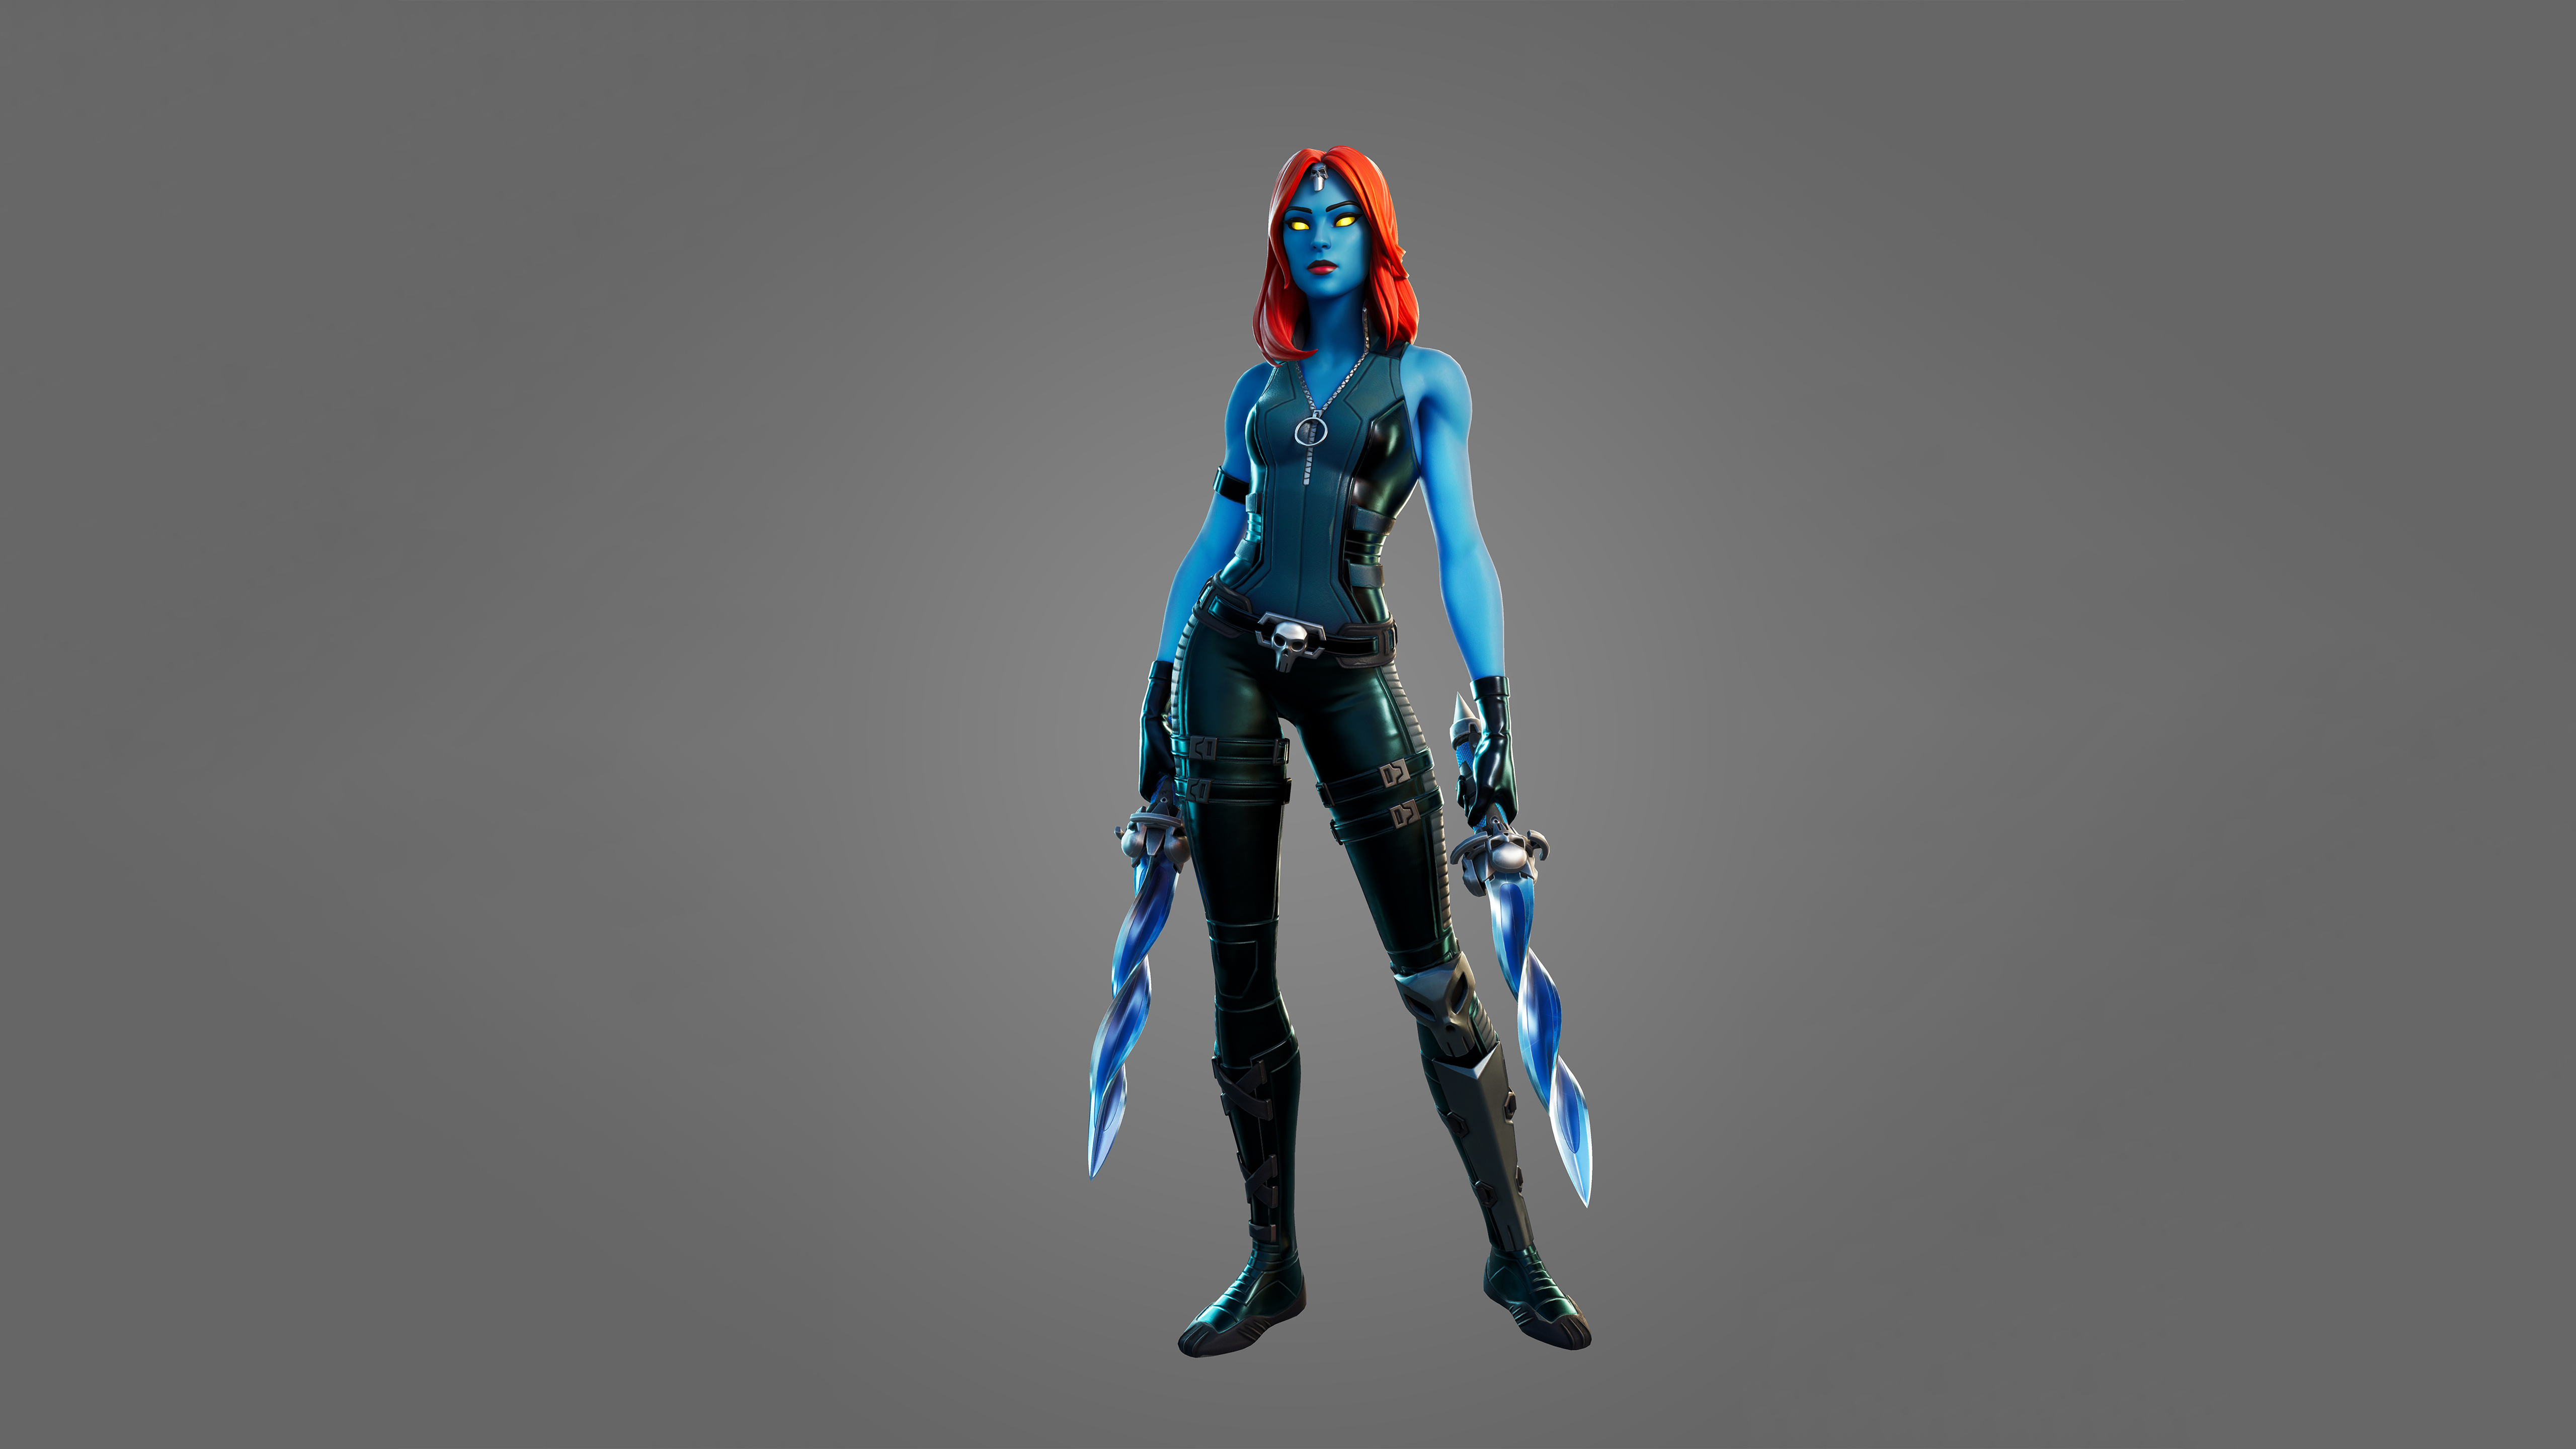 1920x1080 Mystique Fortnite Season 4 Laptop Full Hd 1080p Hd 4k Wallpapers Images Backgrounds Photos And Pictures